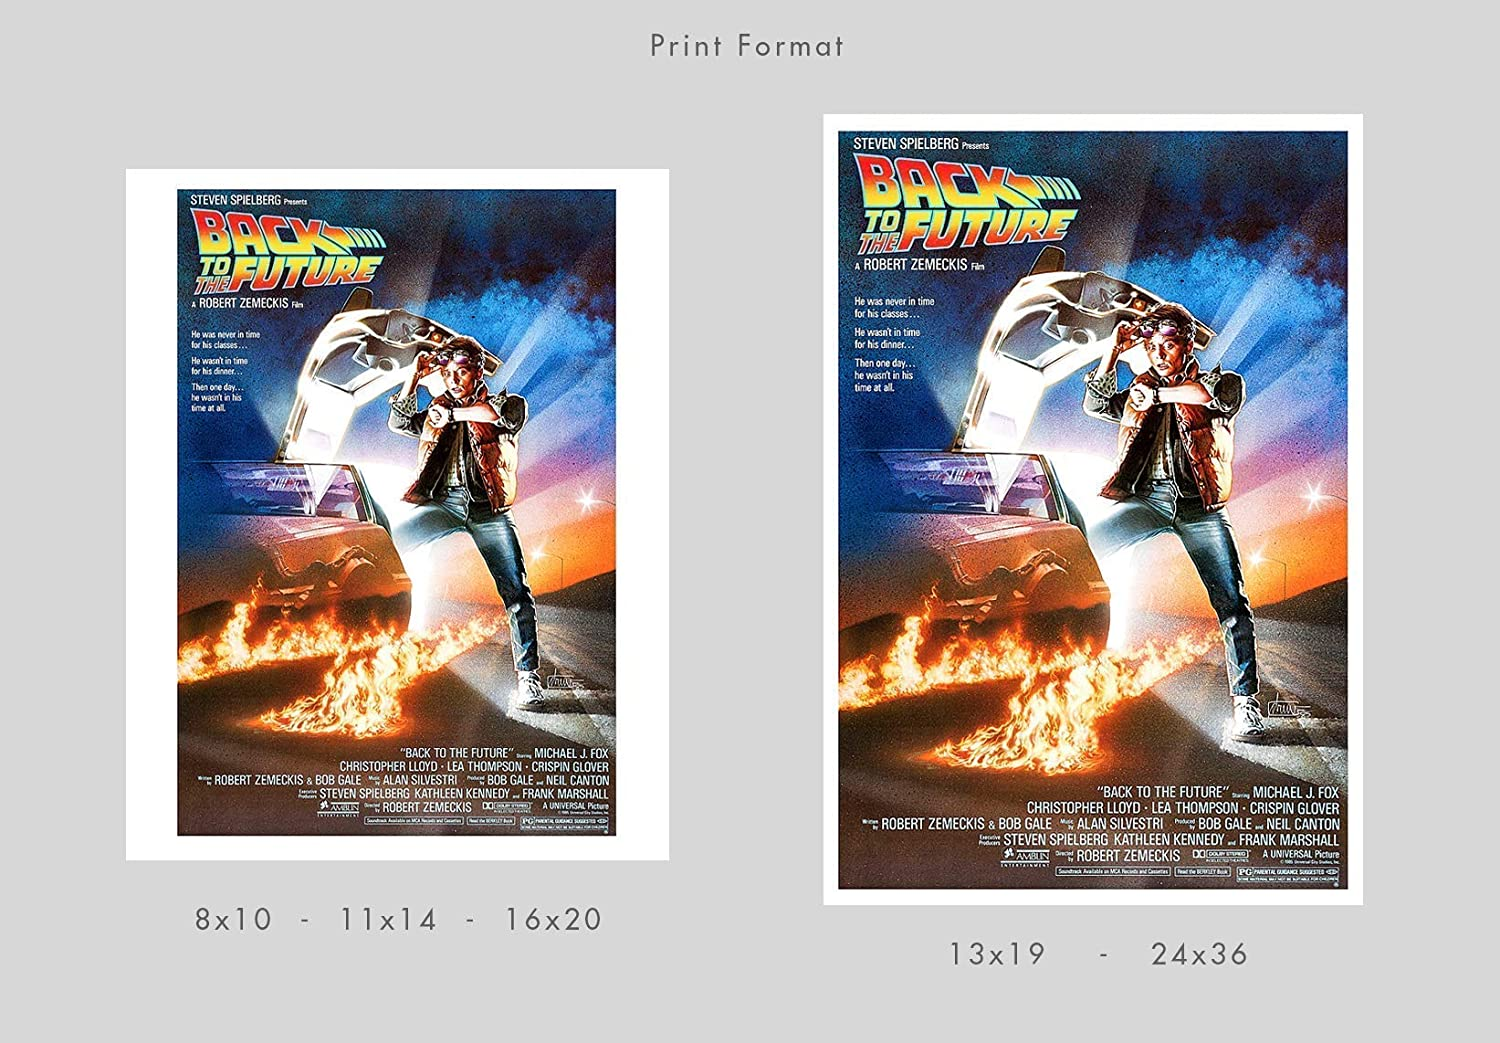 Movie poster print by delovely Arts Back to the Future